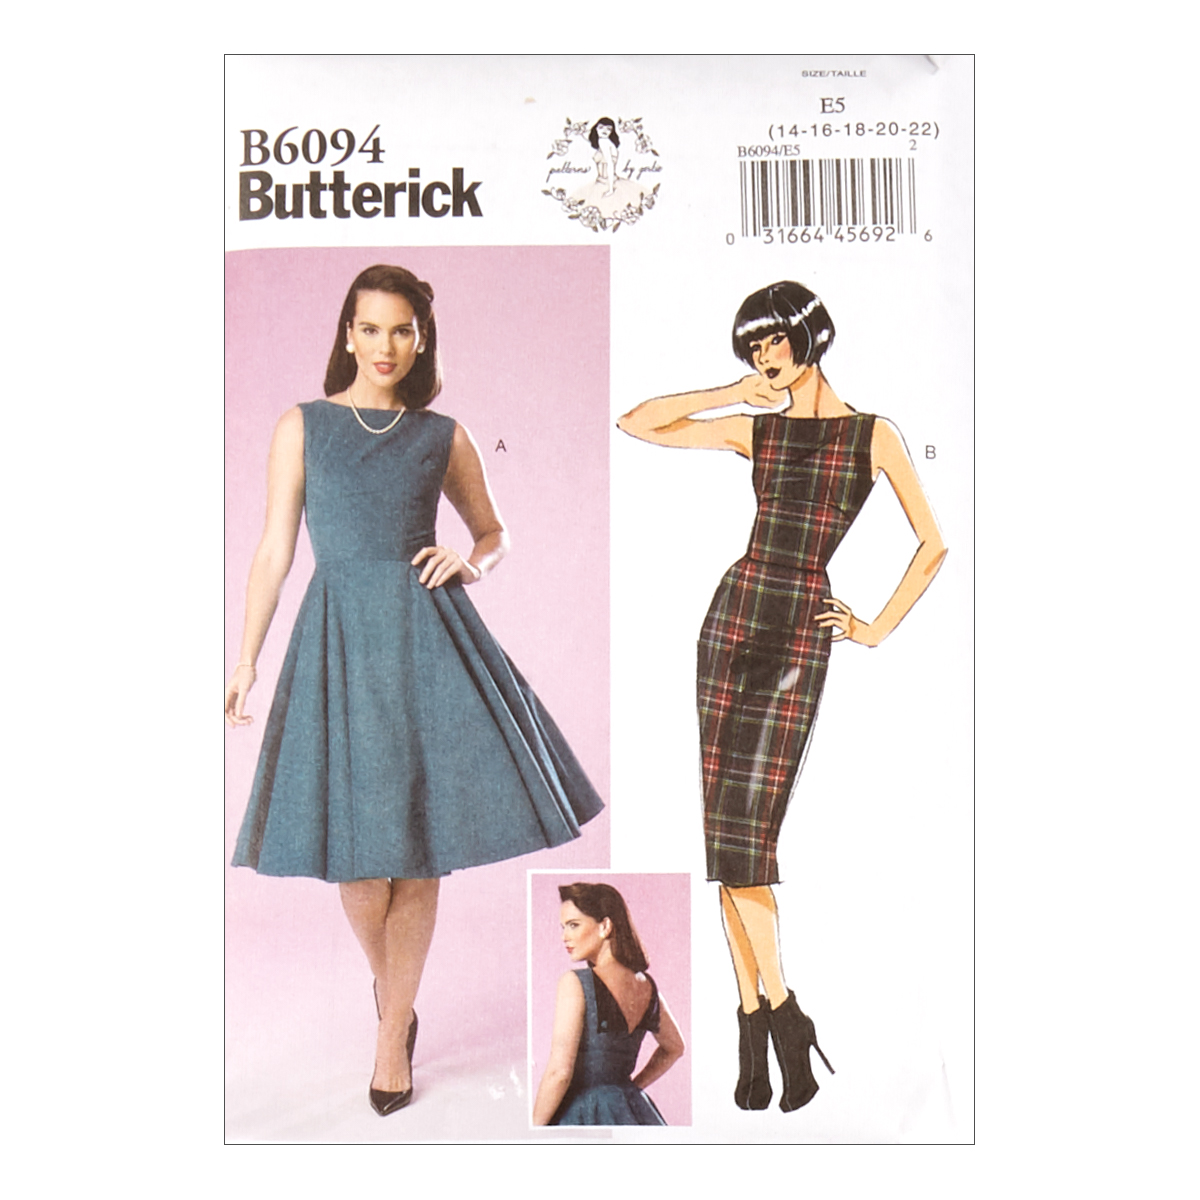 1950s Sewing Patterns | Dresses, Skirts, Tops, Mens Butterick B6094 Patterns by Gertie Misses Dress E5 Sizes 14-22 $11.97 AT vintagedancer.com